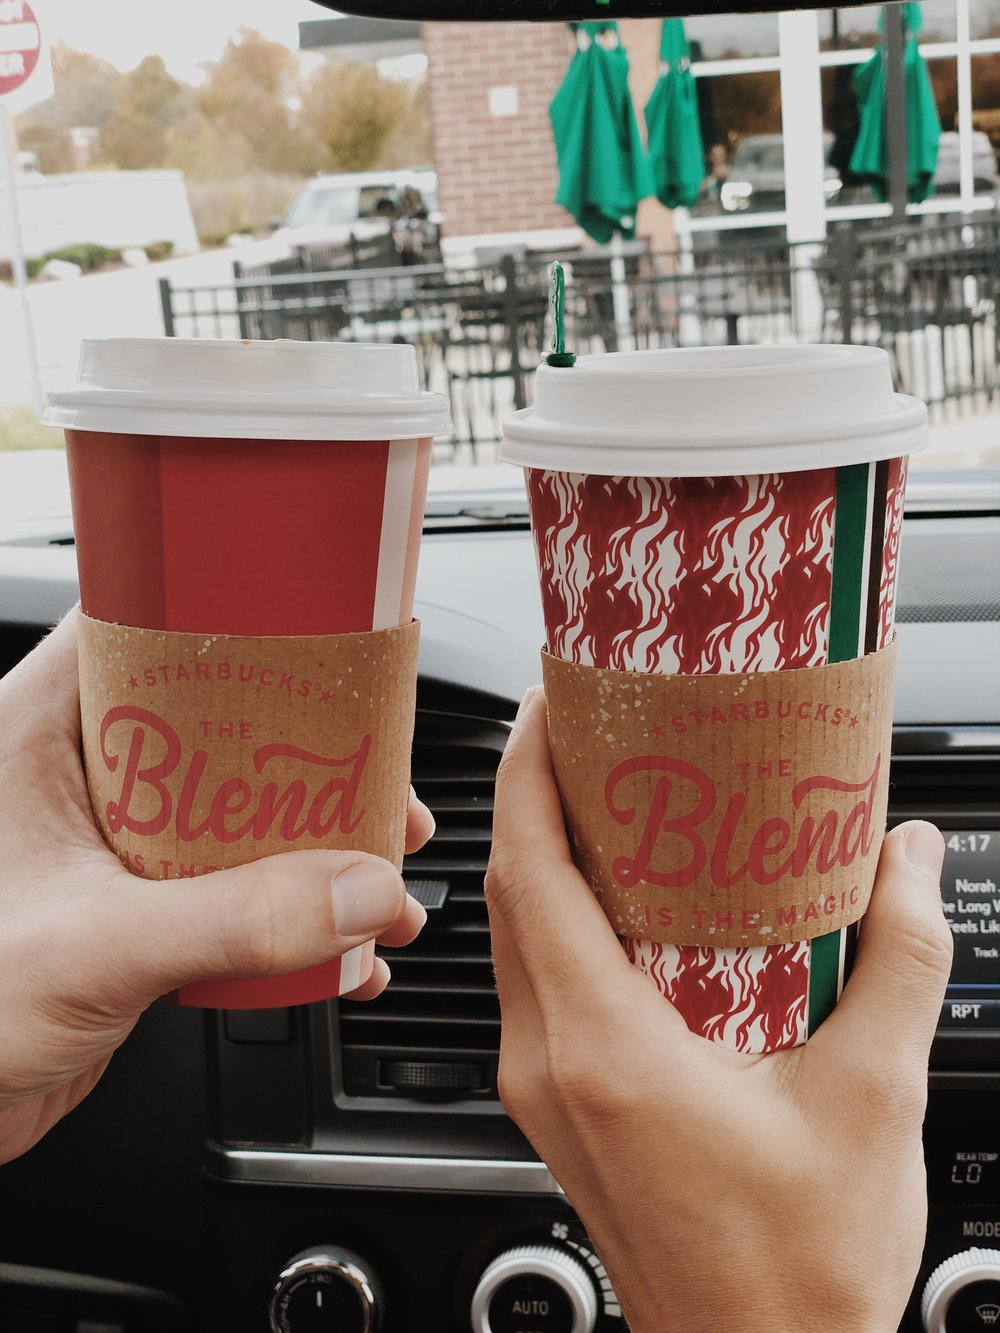 Out of Holiday cups - but I (right) got a Ginger Bread Latte and Kyle got a PSL